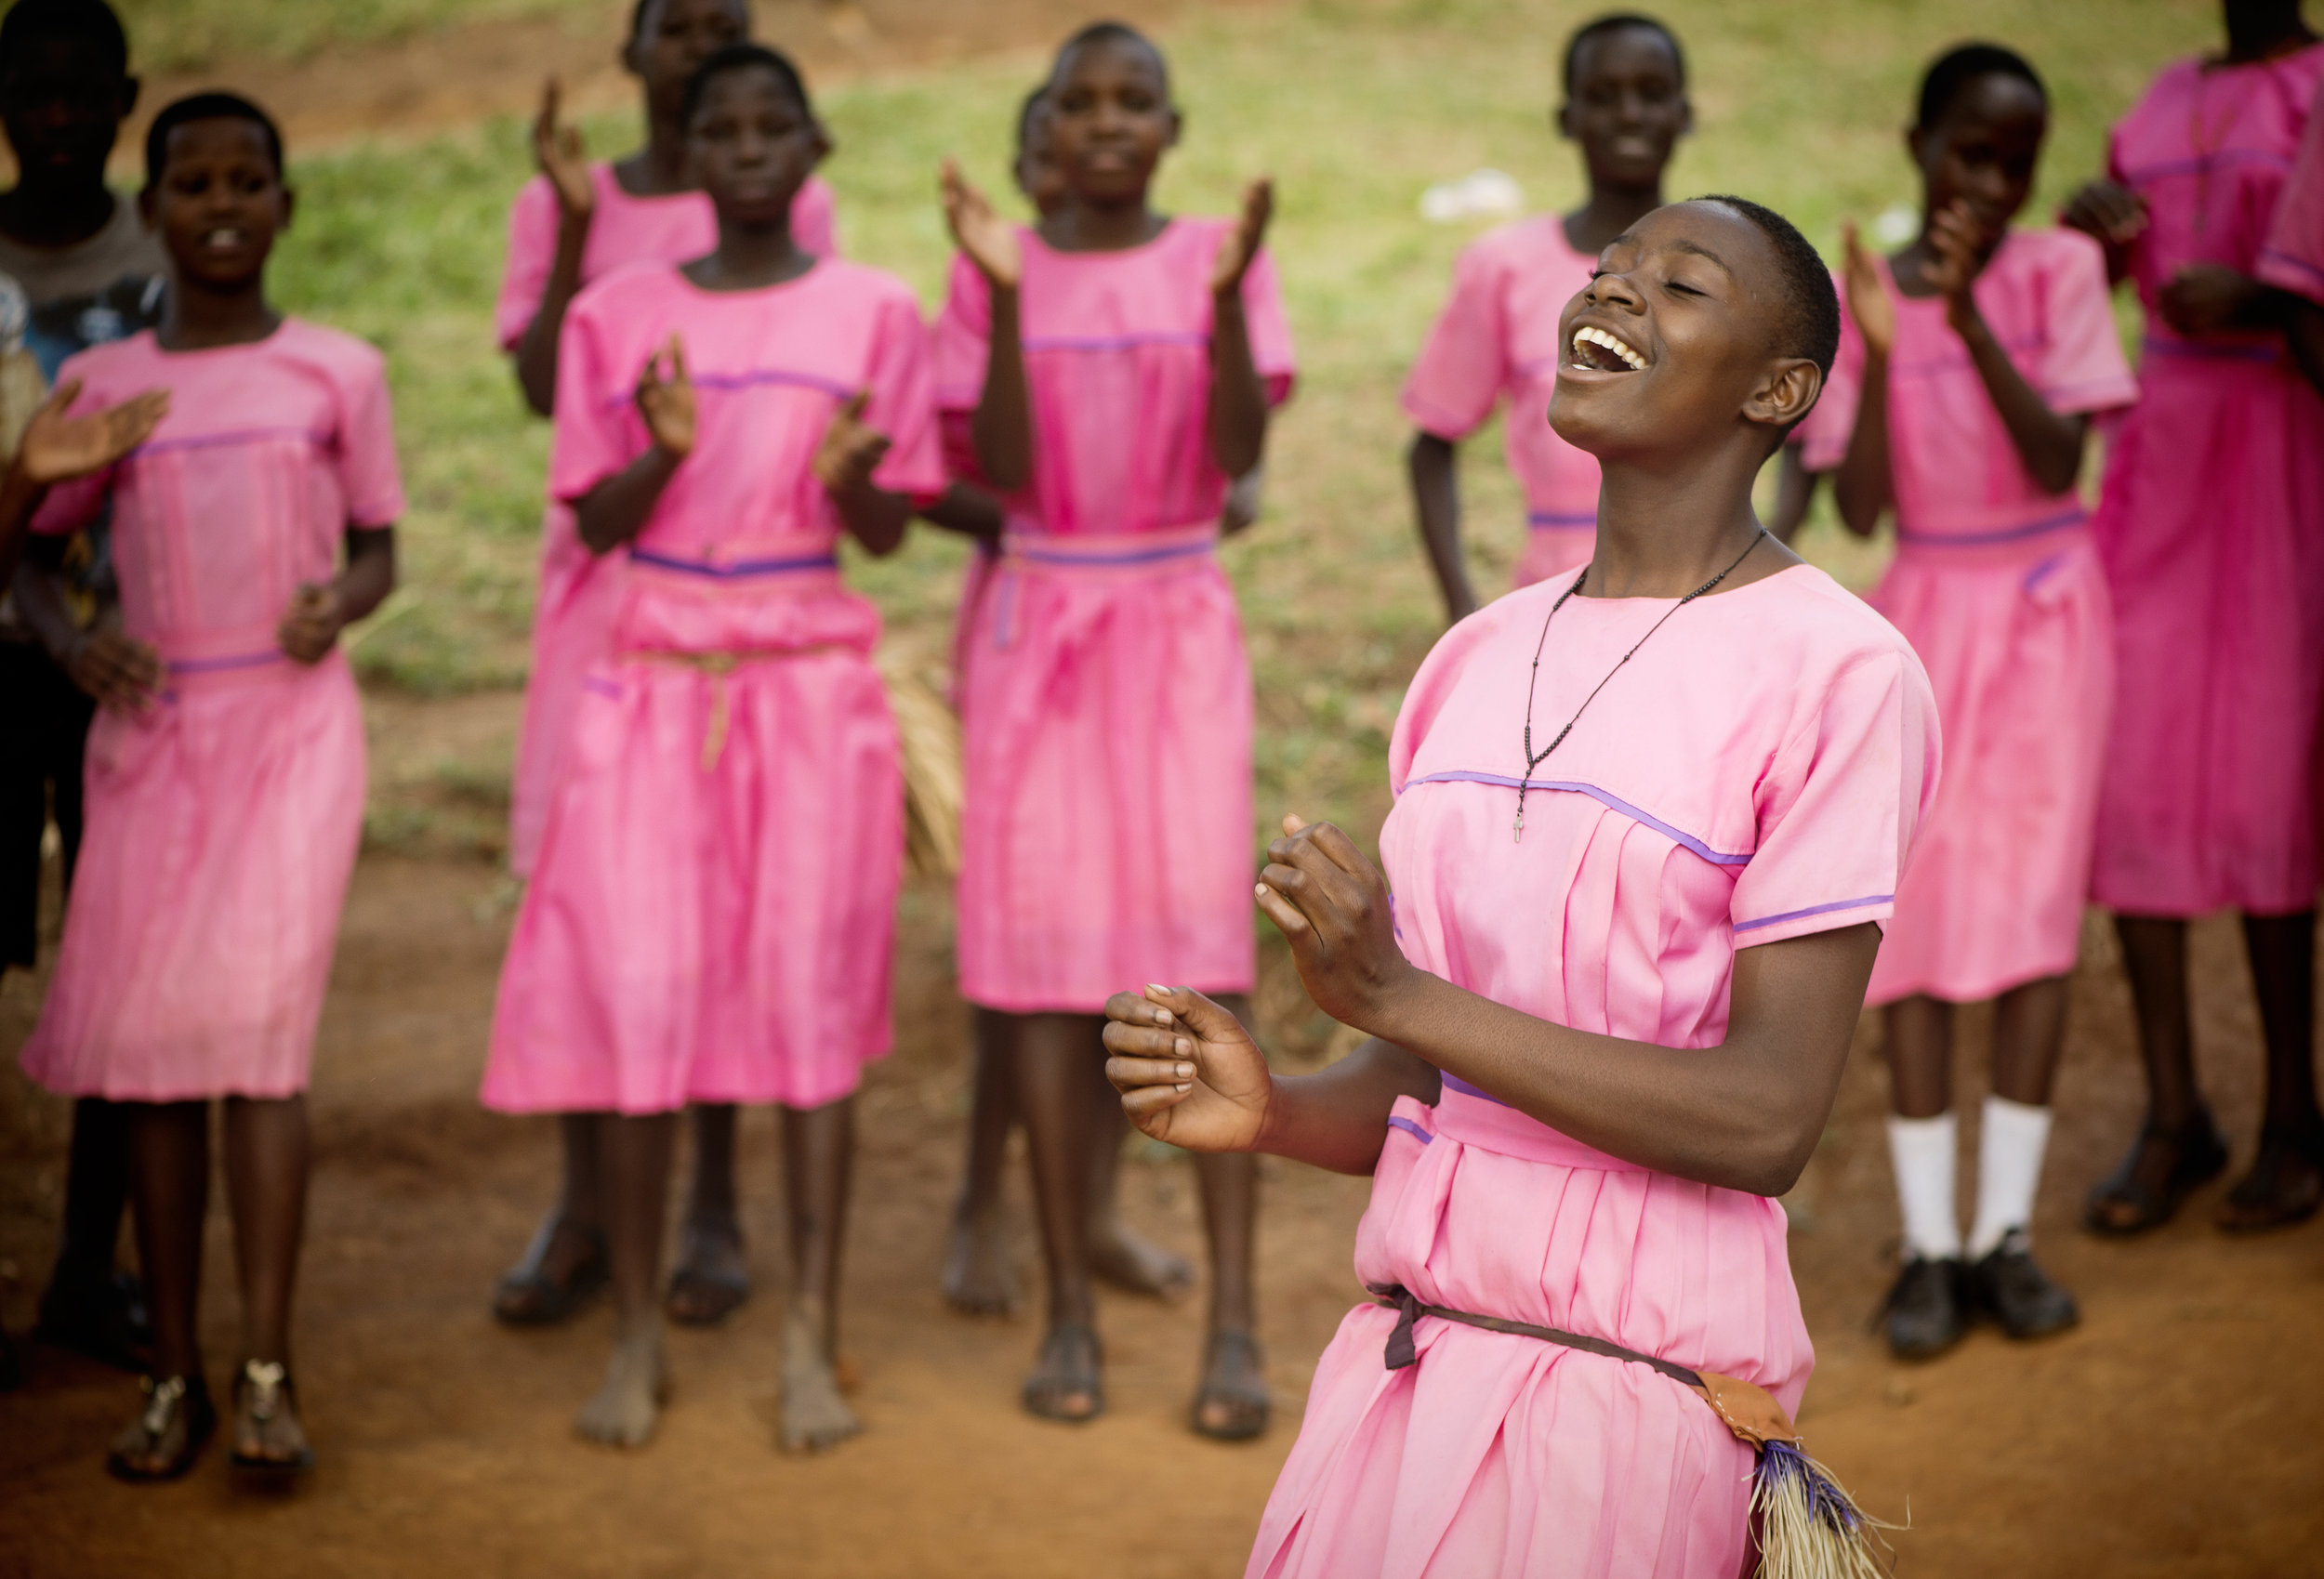 Photo: Eliza Powell, WaterAid, Uganda